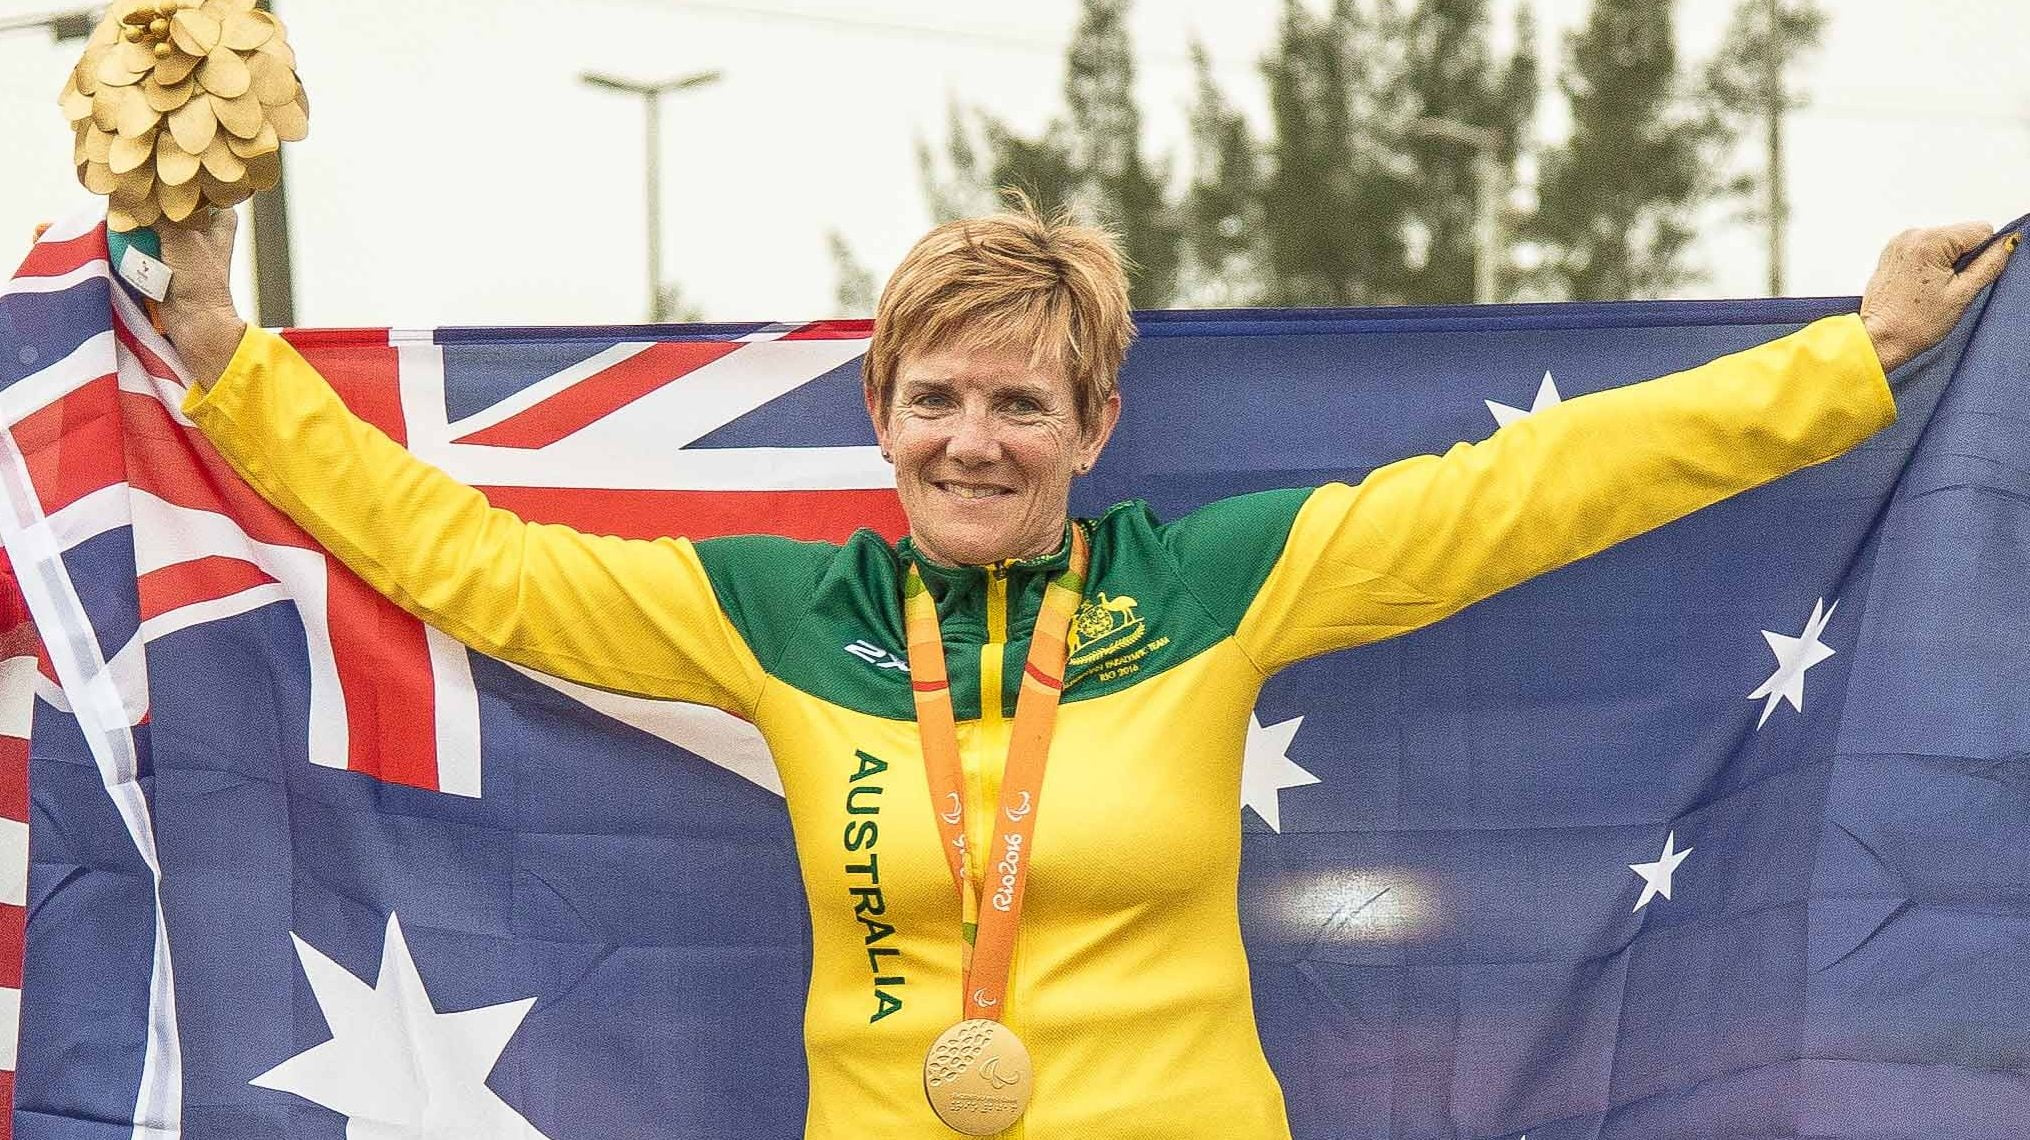 #LifeWithMS is one worth living to the fullest says Paralympic champion